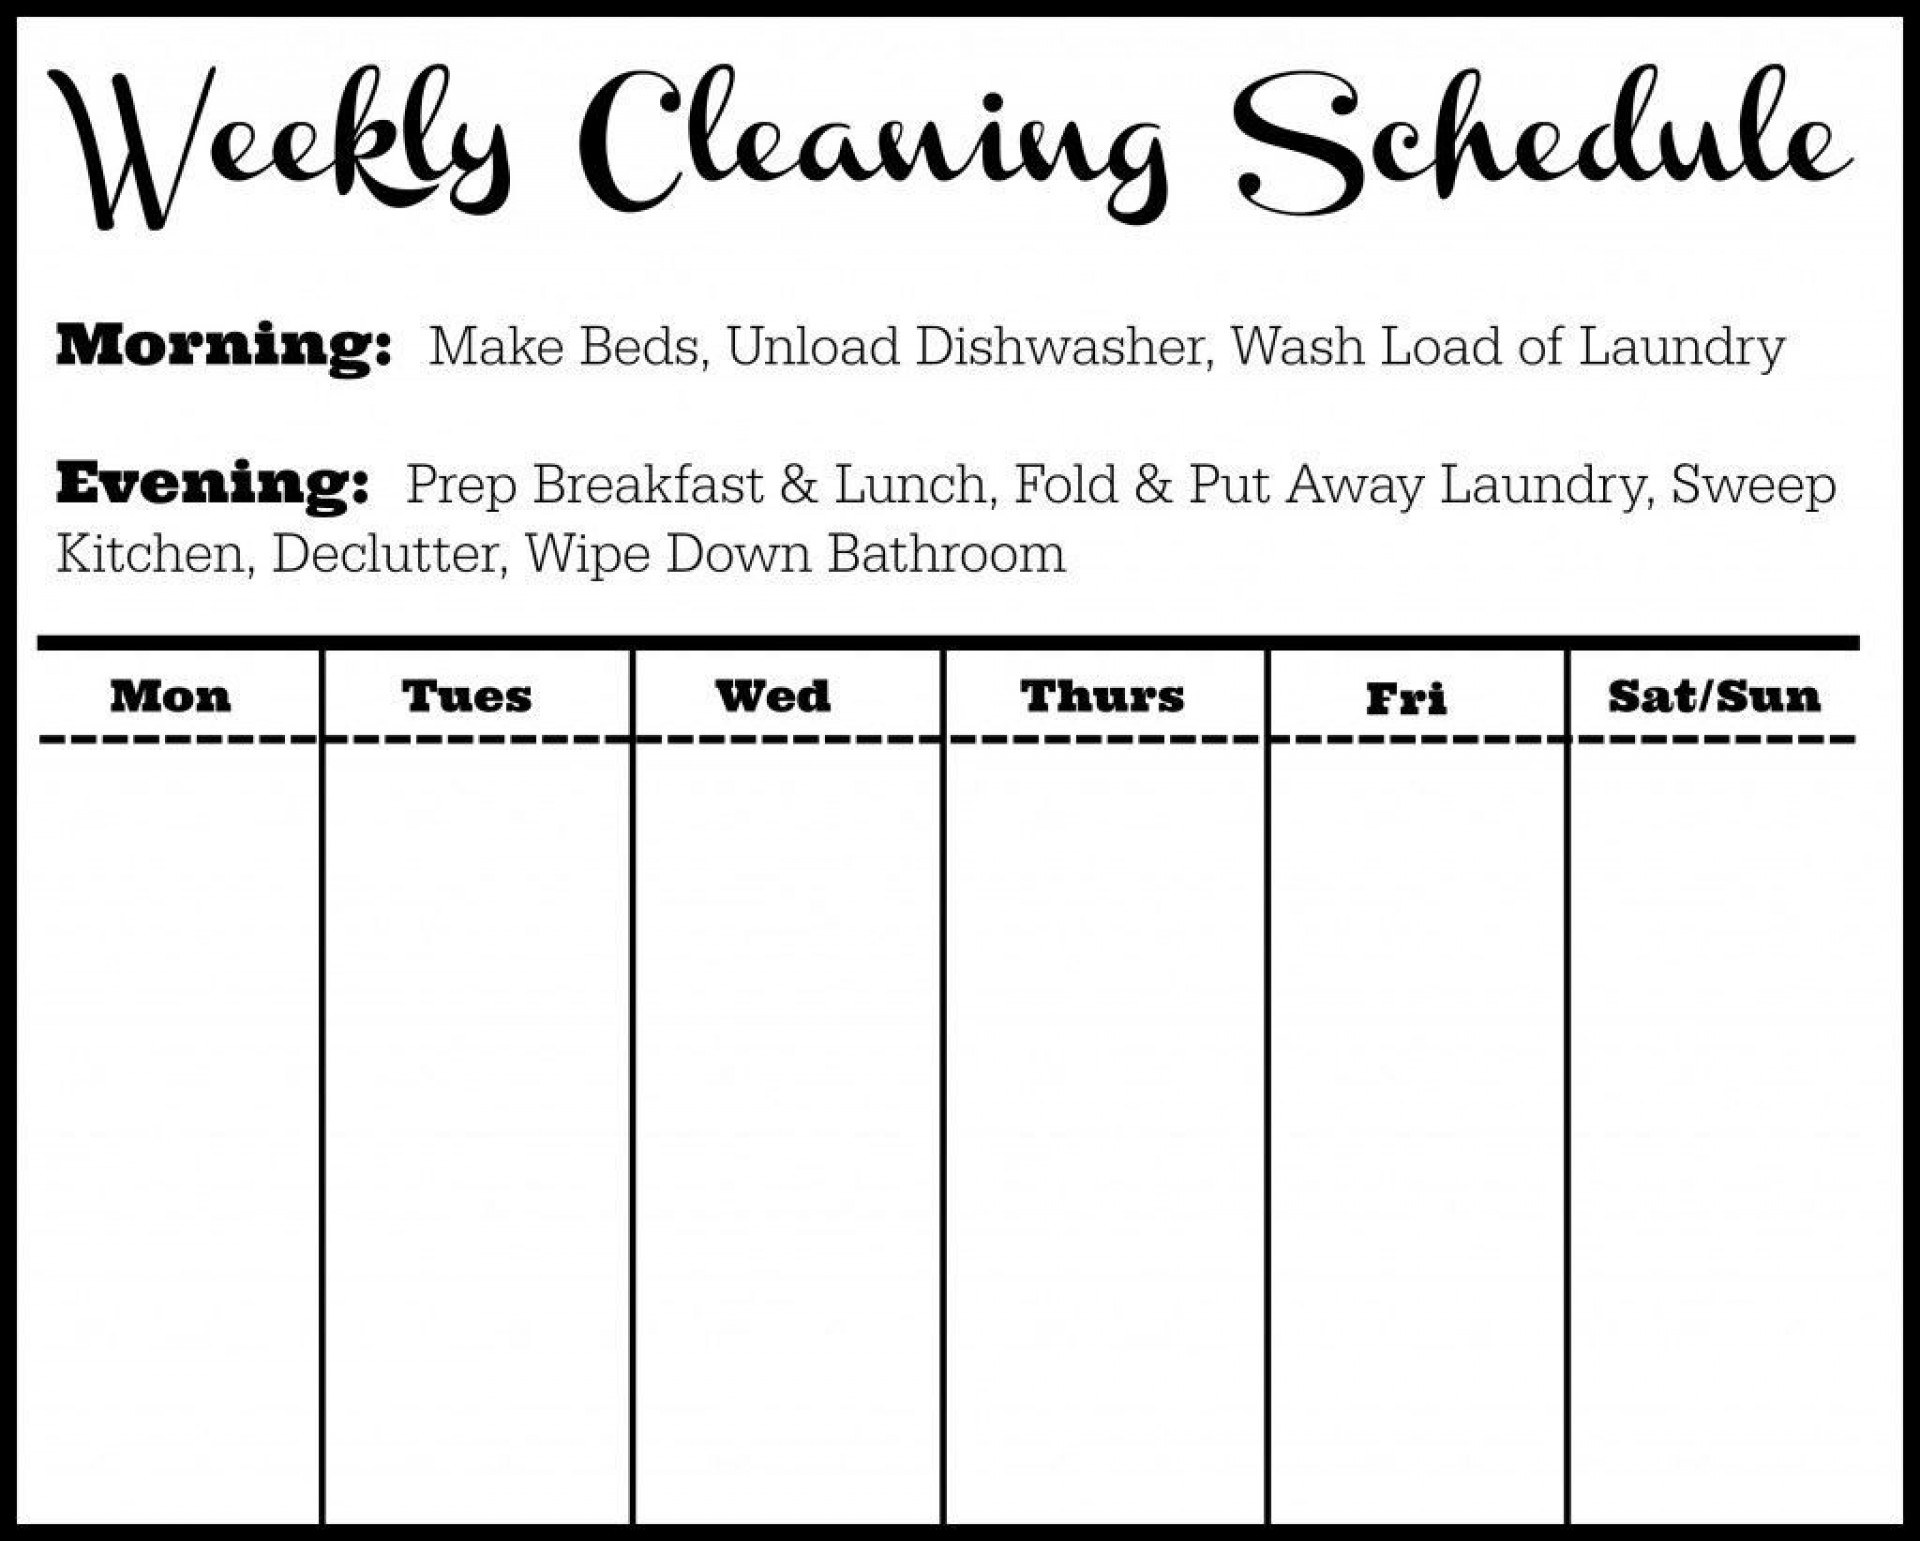 000 Surprising Weekly Cleaning Schedule Format Photo  Template Free Sample1920